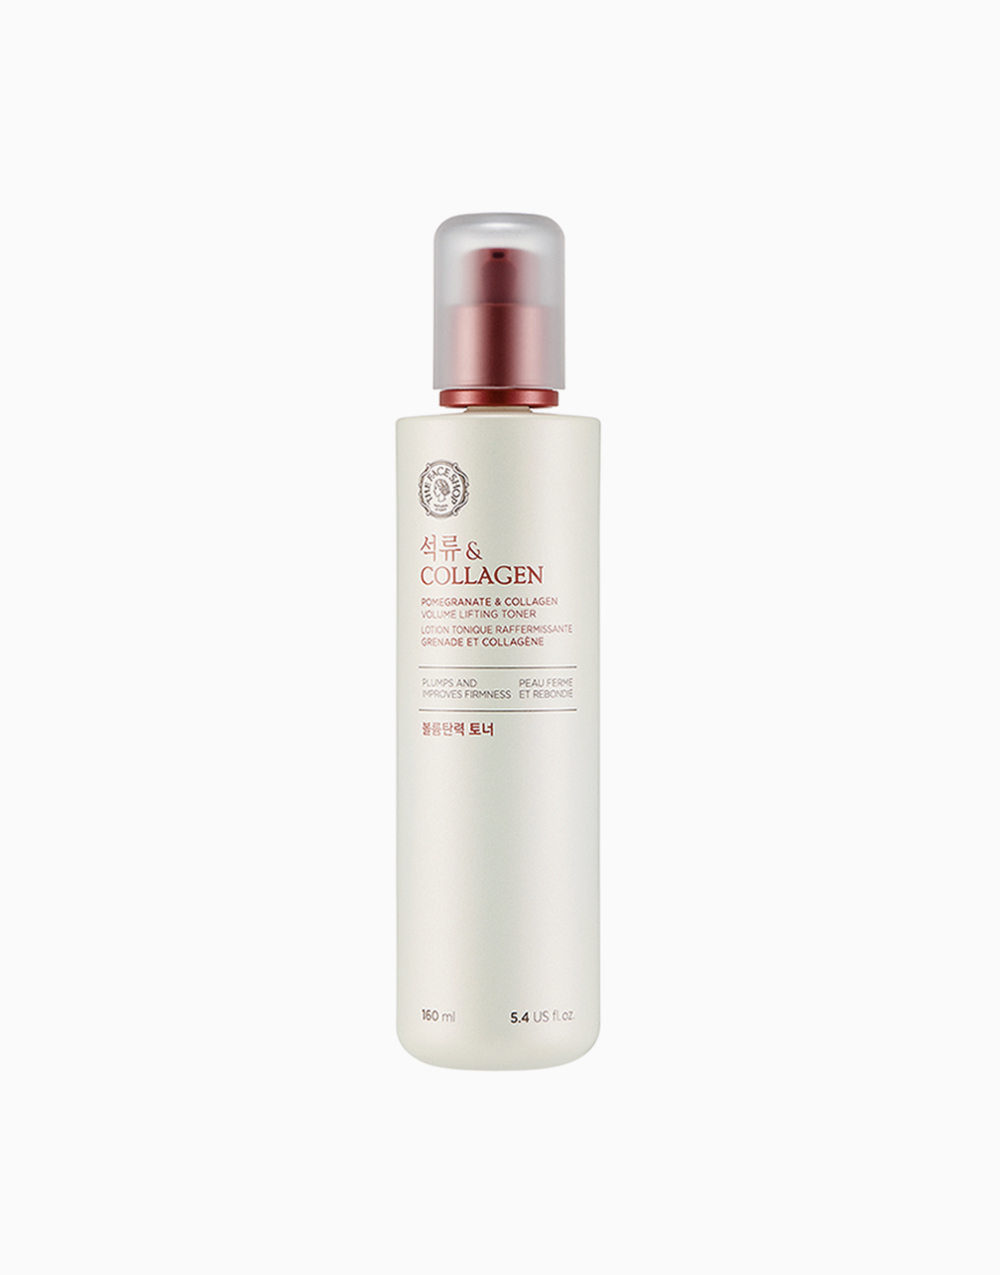 Pomegranate and Collagen Volume Lifting Toner by The Face Shop